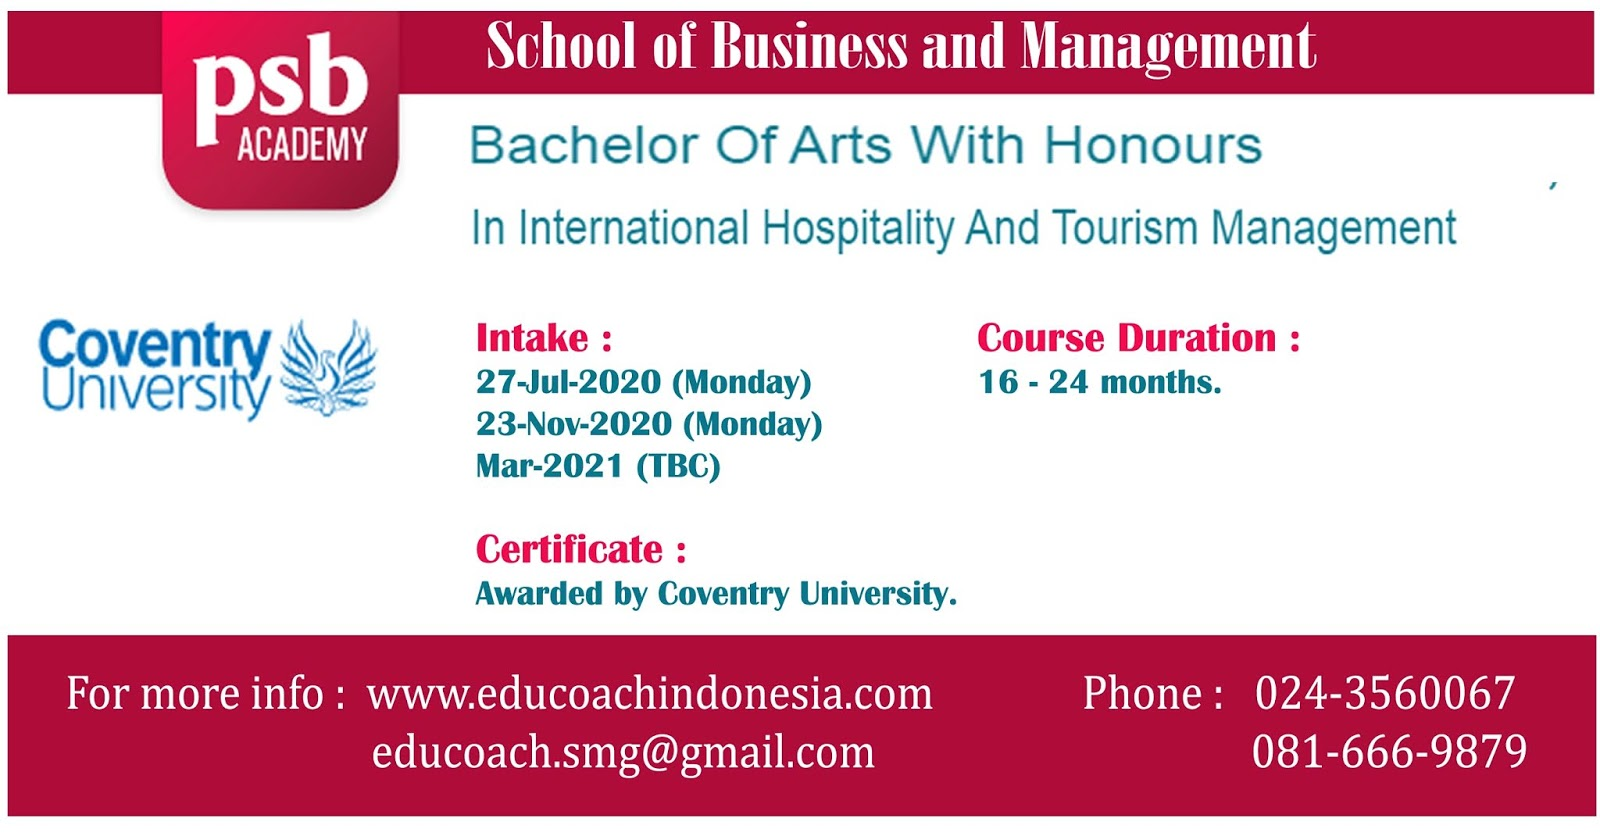 Bachelor Of Arts With Honours In International Hospitality And Tourism Management | University of Coventry | PSB Academy Singapura